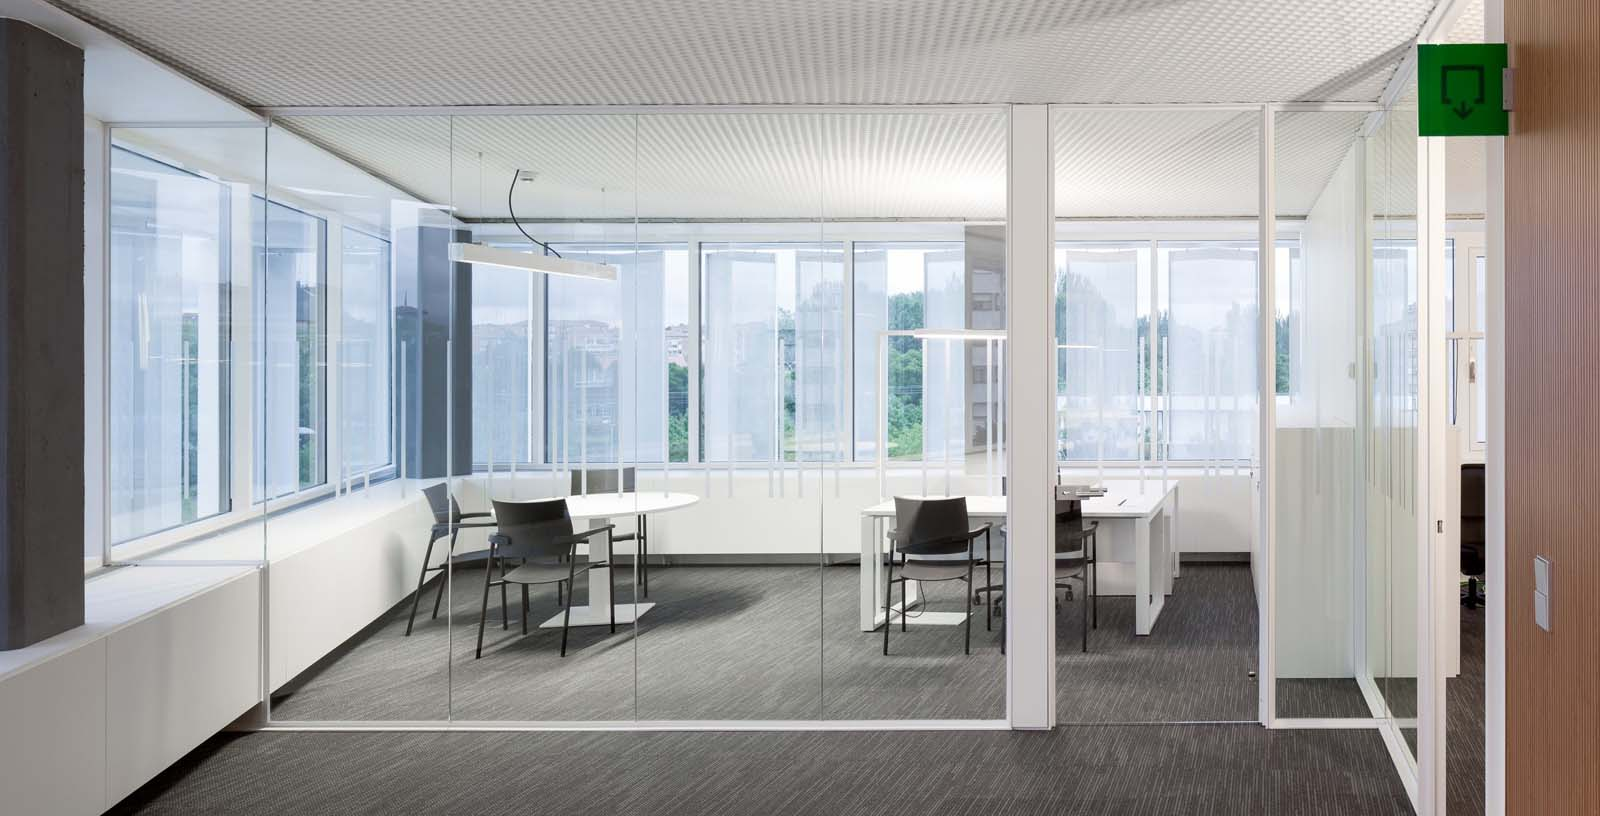 New_Offices_Vitoria_City_Council_06_Architecture_Idom_Photos_Aitor_Ortiz